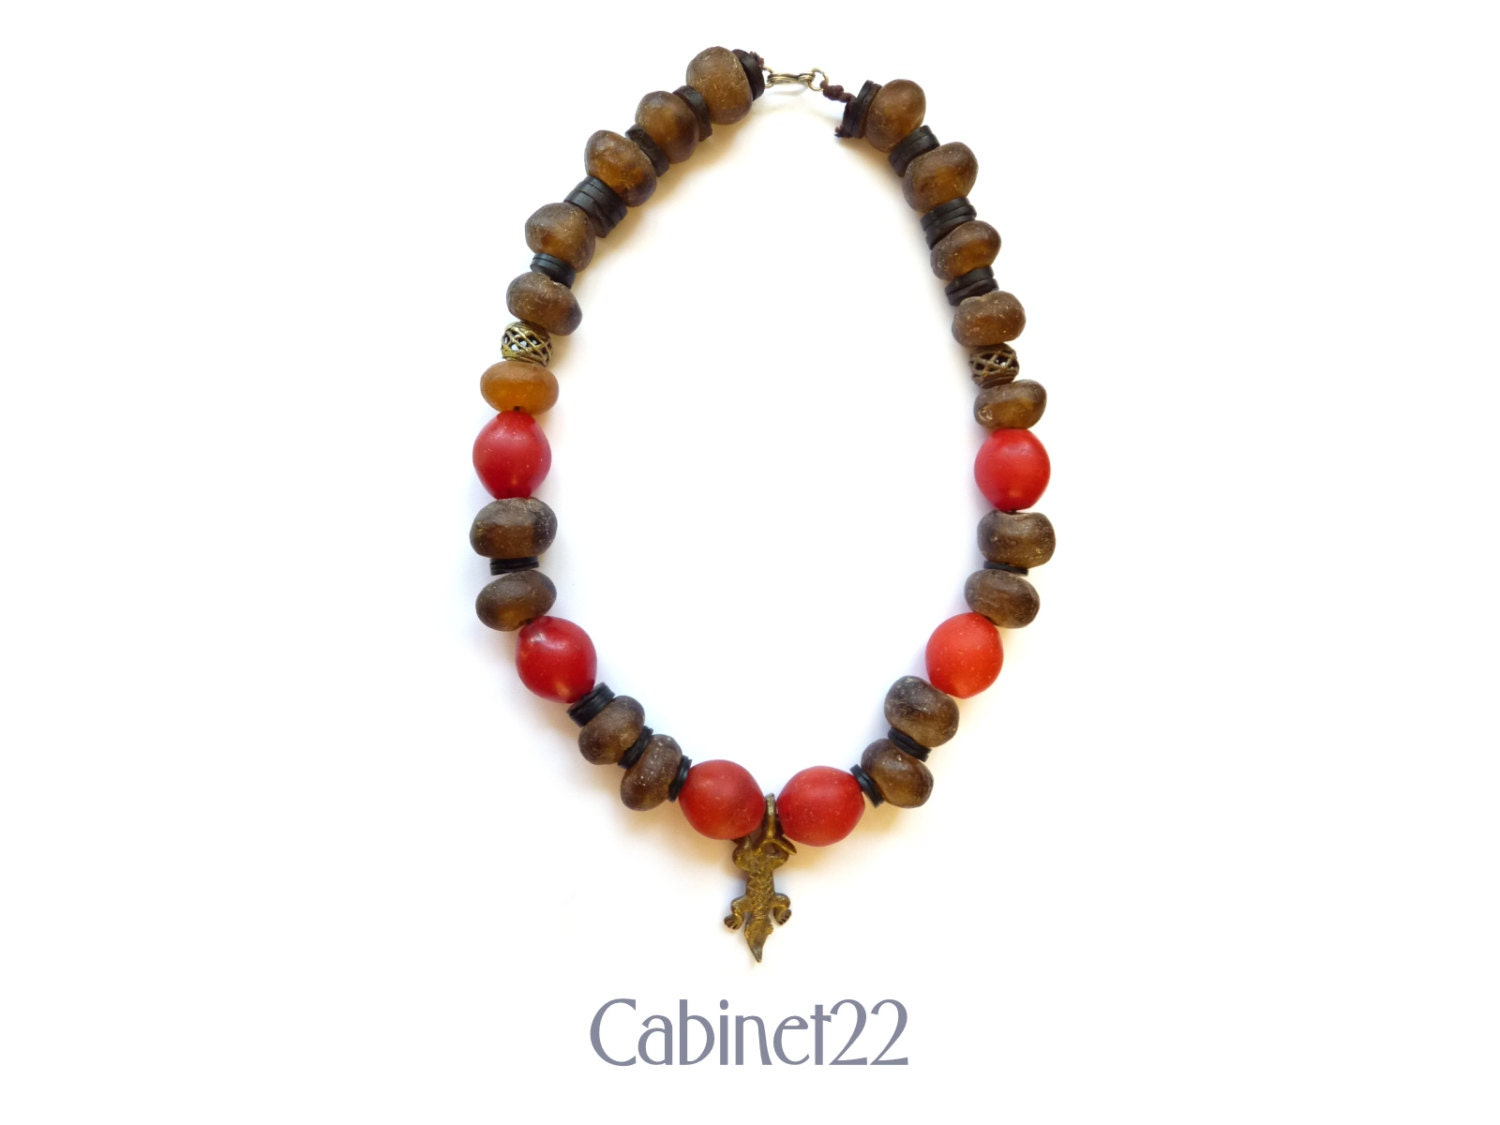 African Trade Bead necklace antique vintage statement necklace tribal necklace  Cabinet22